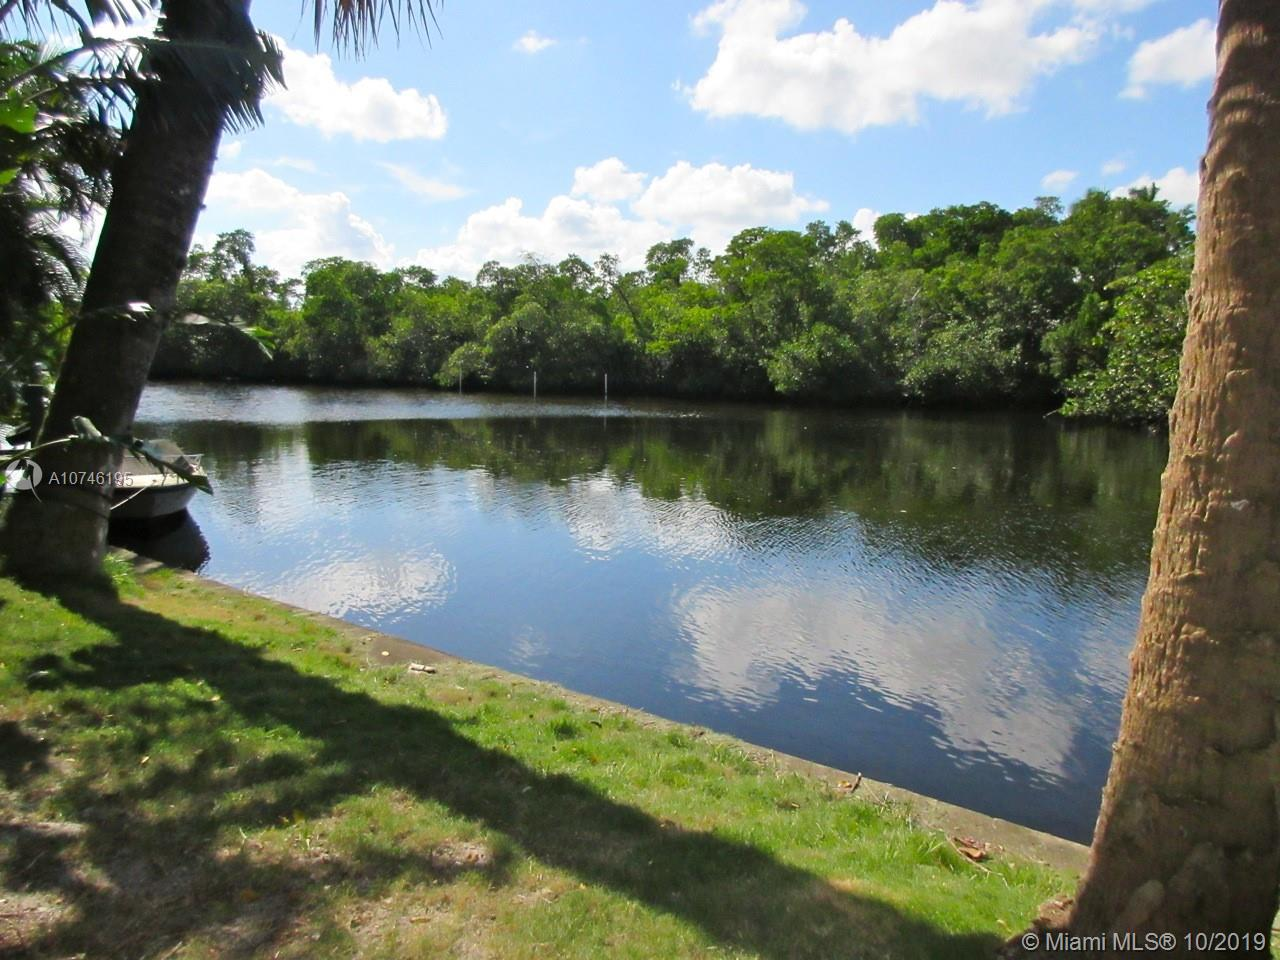 Spectacular Waterfront Location!! Endless Possibilities!! This South Fork of the Middle River property sports a huge lot! 12,014 sqft! Just over a quarter acre, with over 105 feet of water frontage. Zoned as a RML-25, one could build a multi-unit, luxury property for sales or rentals. A 200 foot height restriction, means a townhouse style is in order. Bordering Wilton Manors & Ft. Lauderdale, this location puts you in the sweet spot, as it is close to absolutely everything! The existing 3/2 single family home, is showing its age. It needs a new roof, attention to its plumbing, & a complete renovation. The wood deck needs replacement & the seawall needs some care. INVESTOR/DEVELOPER: Build a high profit waterfront dream! PRIMARY: Renovate into a high value waterfront dream!HURRY!